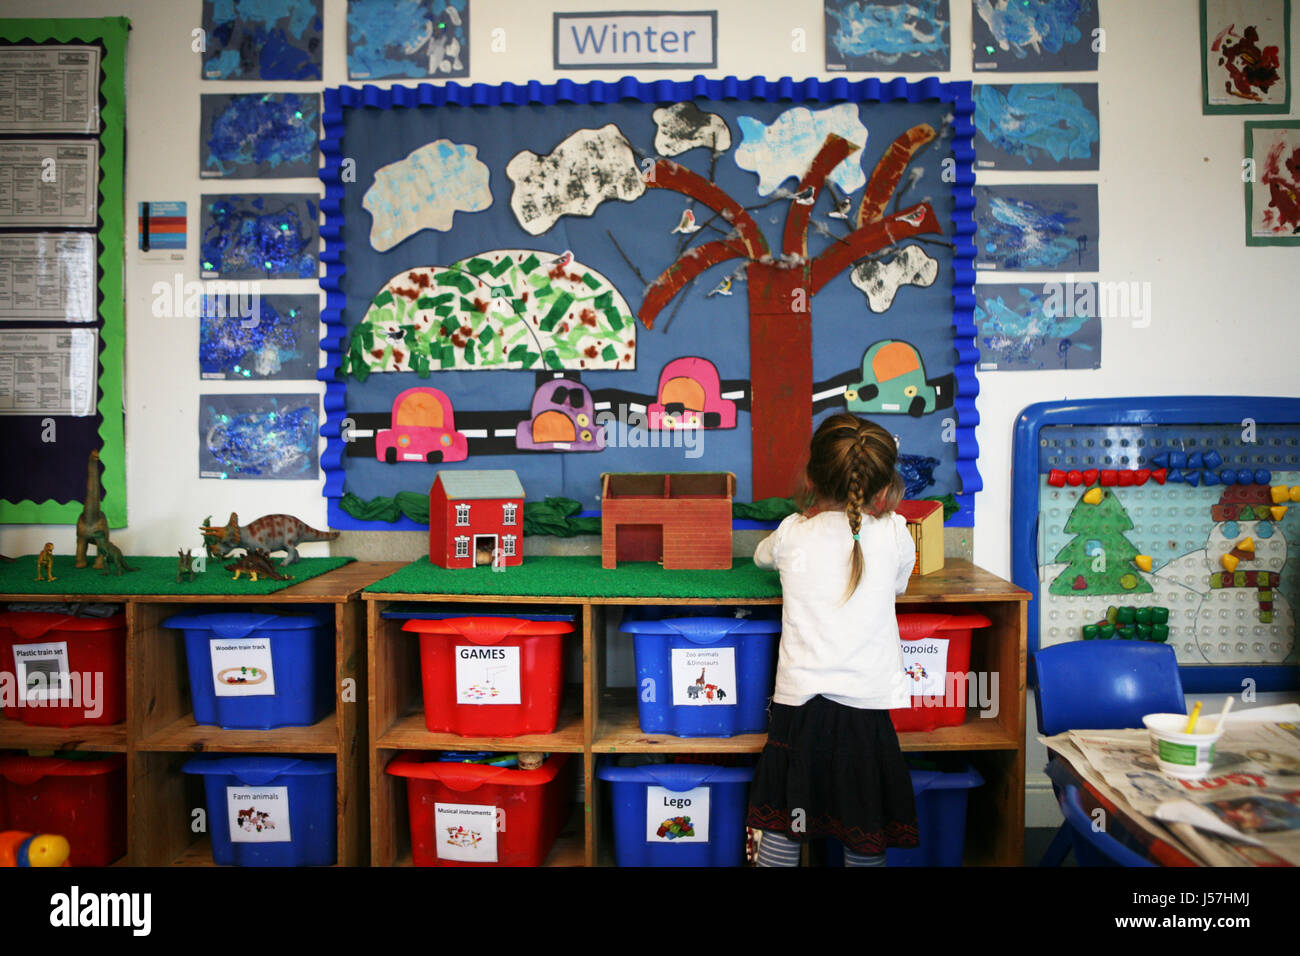 Rosehill Children's Nursery, Bolton.  Children at play in Rosehill Nursery, Bolton. - Stock Image